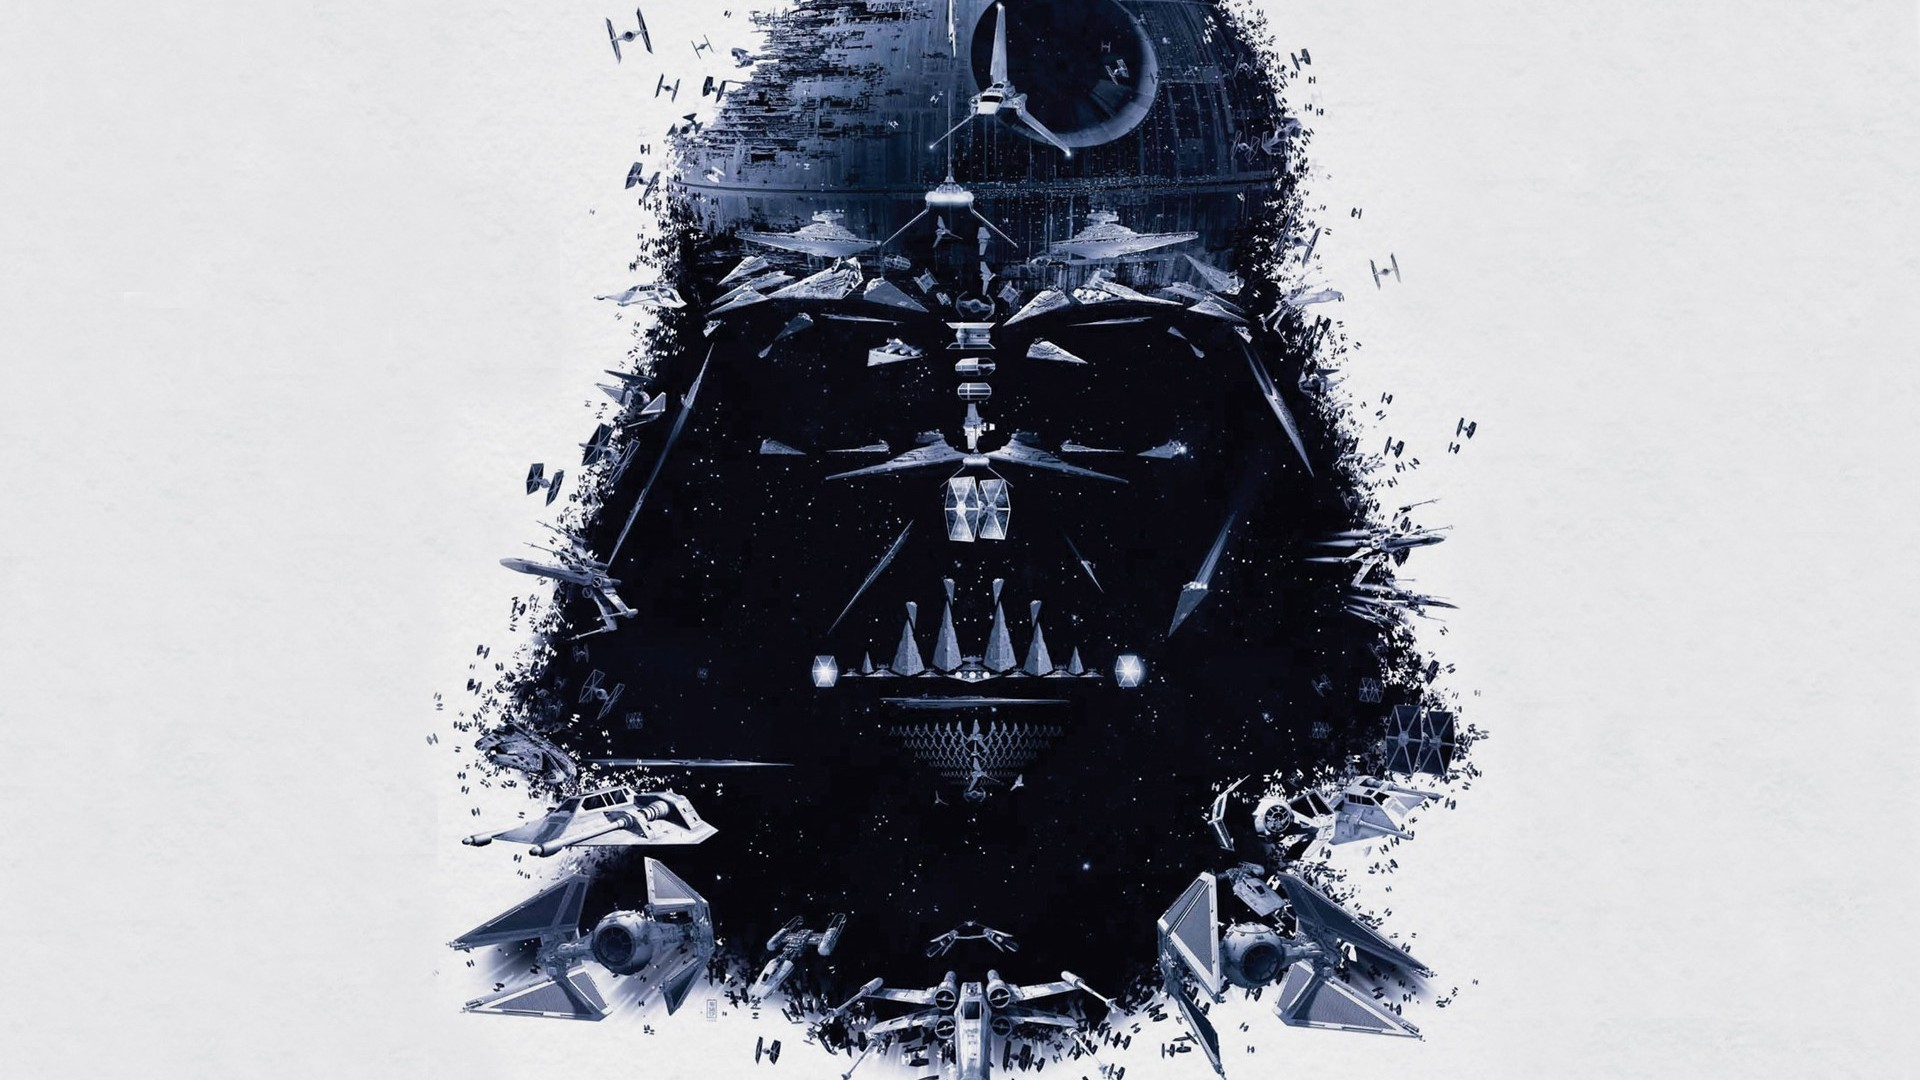 Darth Vader Wallpapers High Resolution and Quality Download 1920x1080